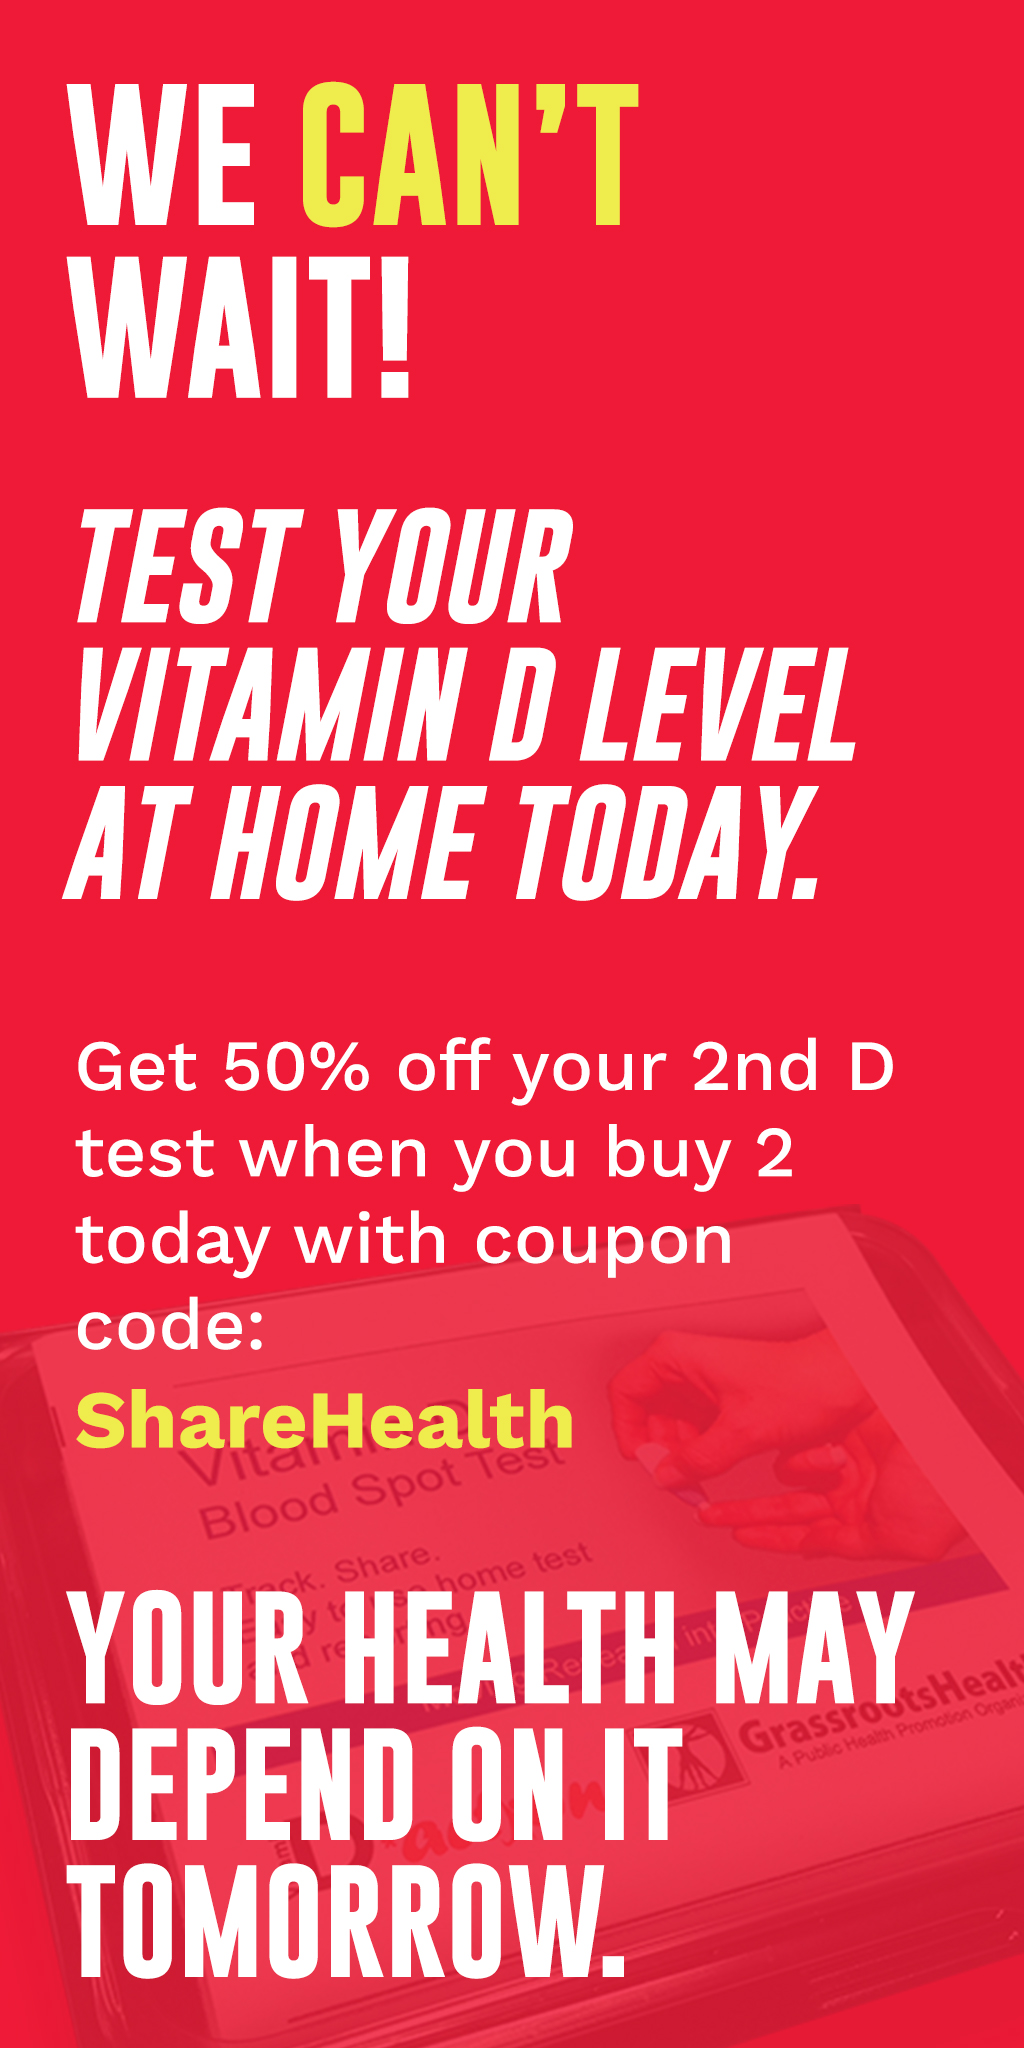 Get 50% off your 2nd D test when you buy 2 today with coupon code: ShareHealth